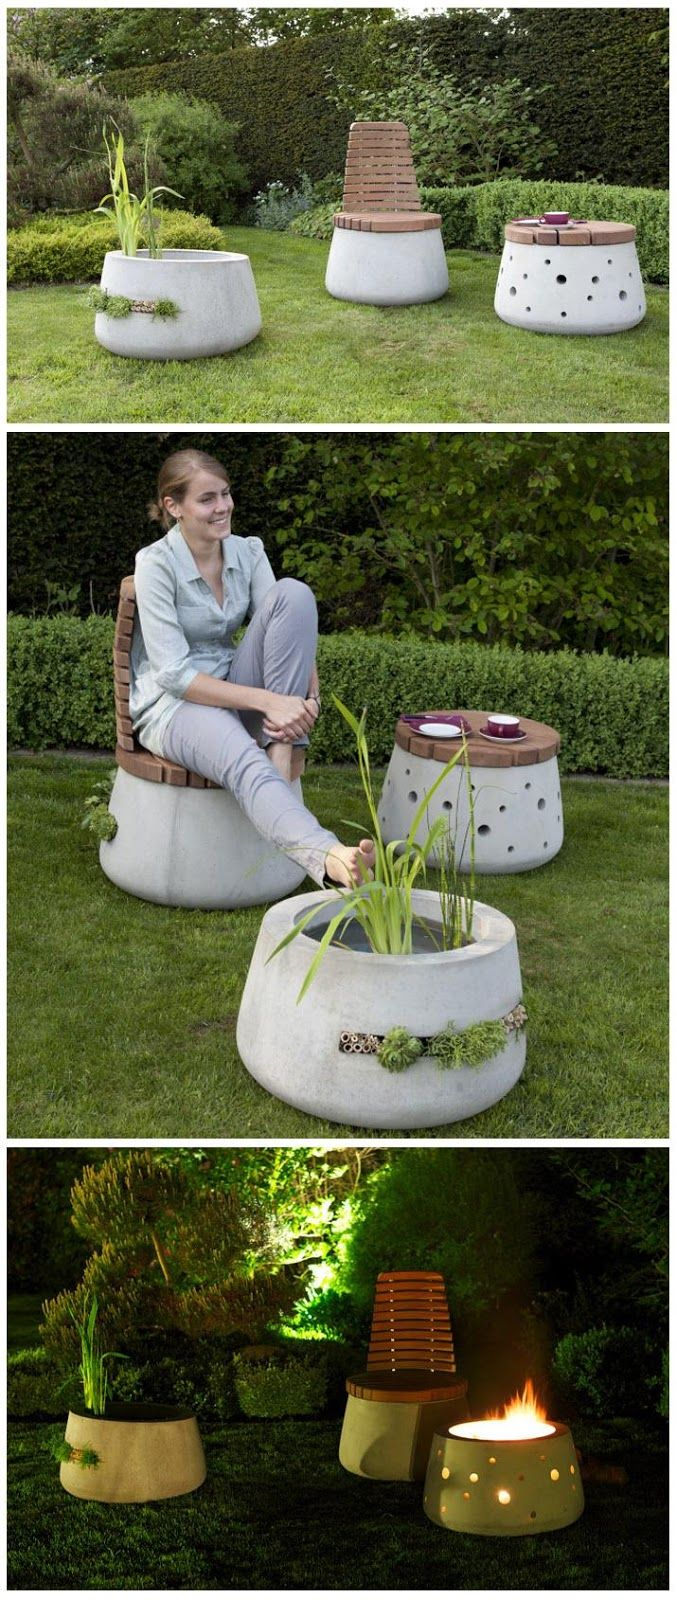 Concrete and Nature united design/development of garden furniture by Katharina Buchholz